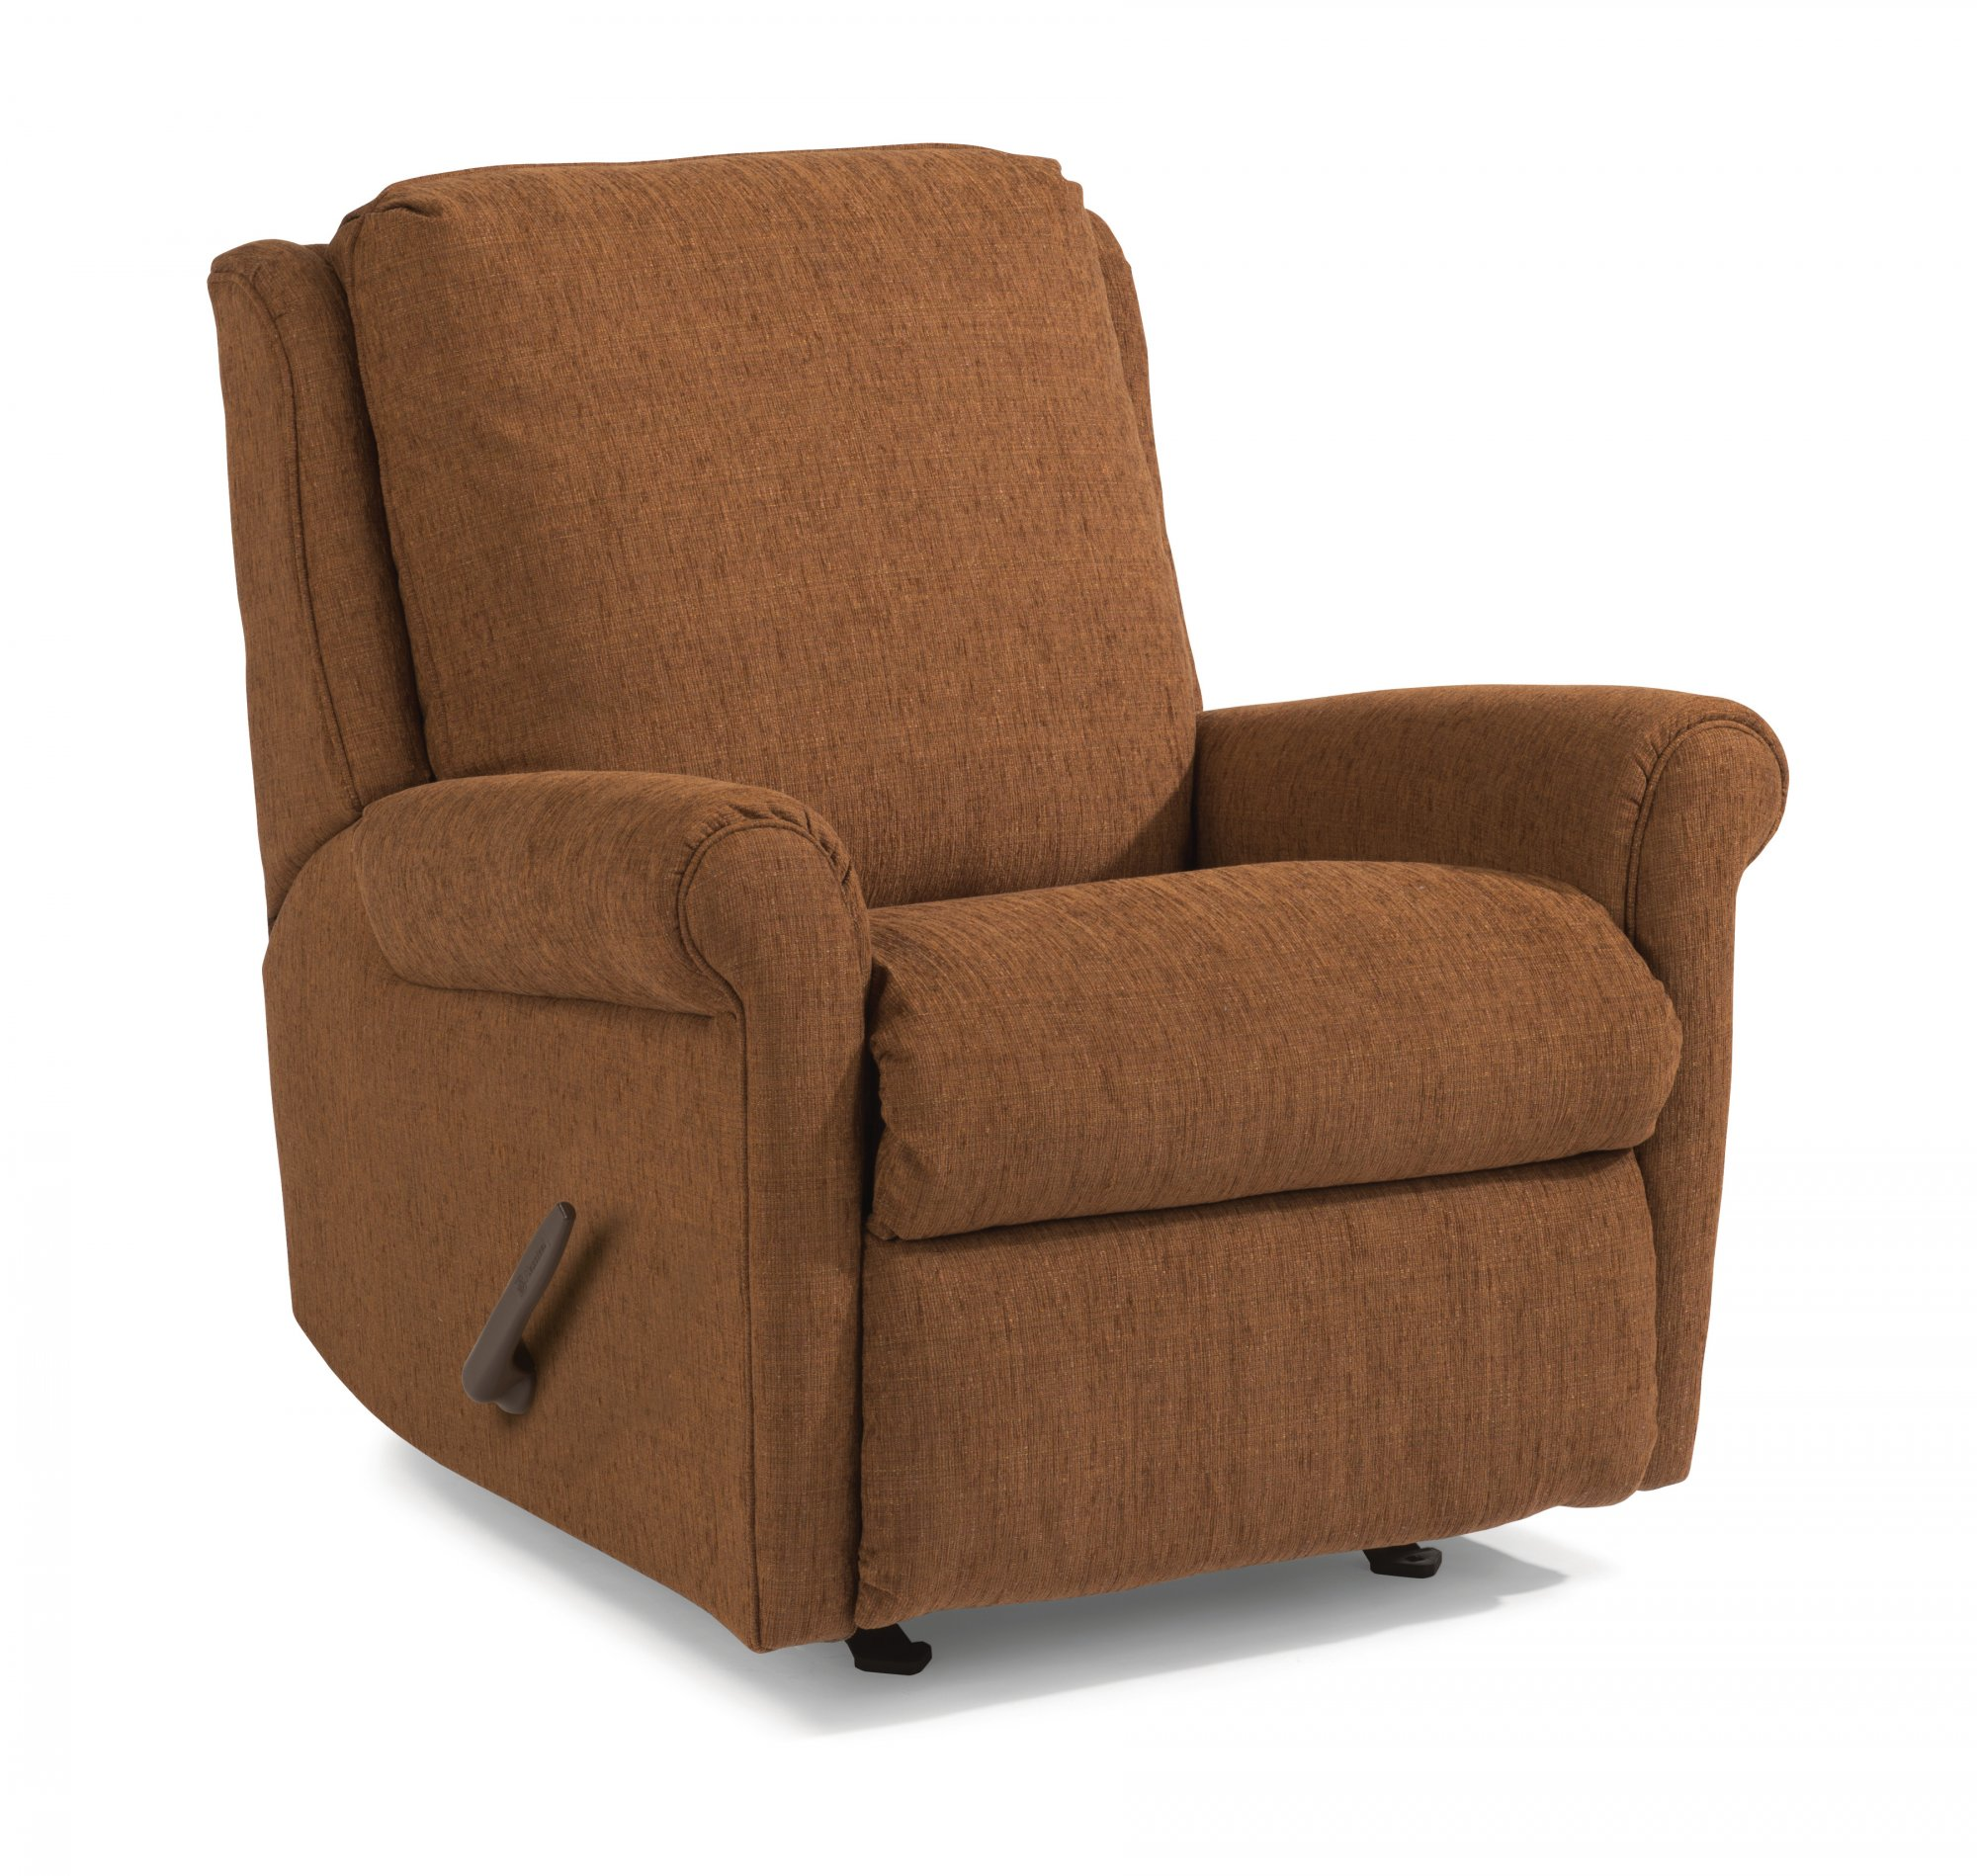 Flexsteel 2866 50m Macy Fabric Power Recliner 2866 50m Park Home